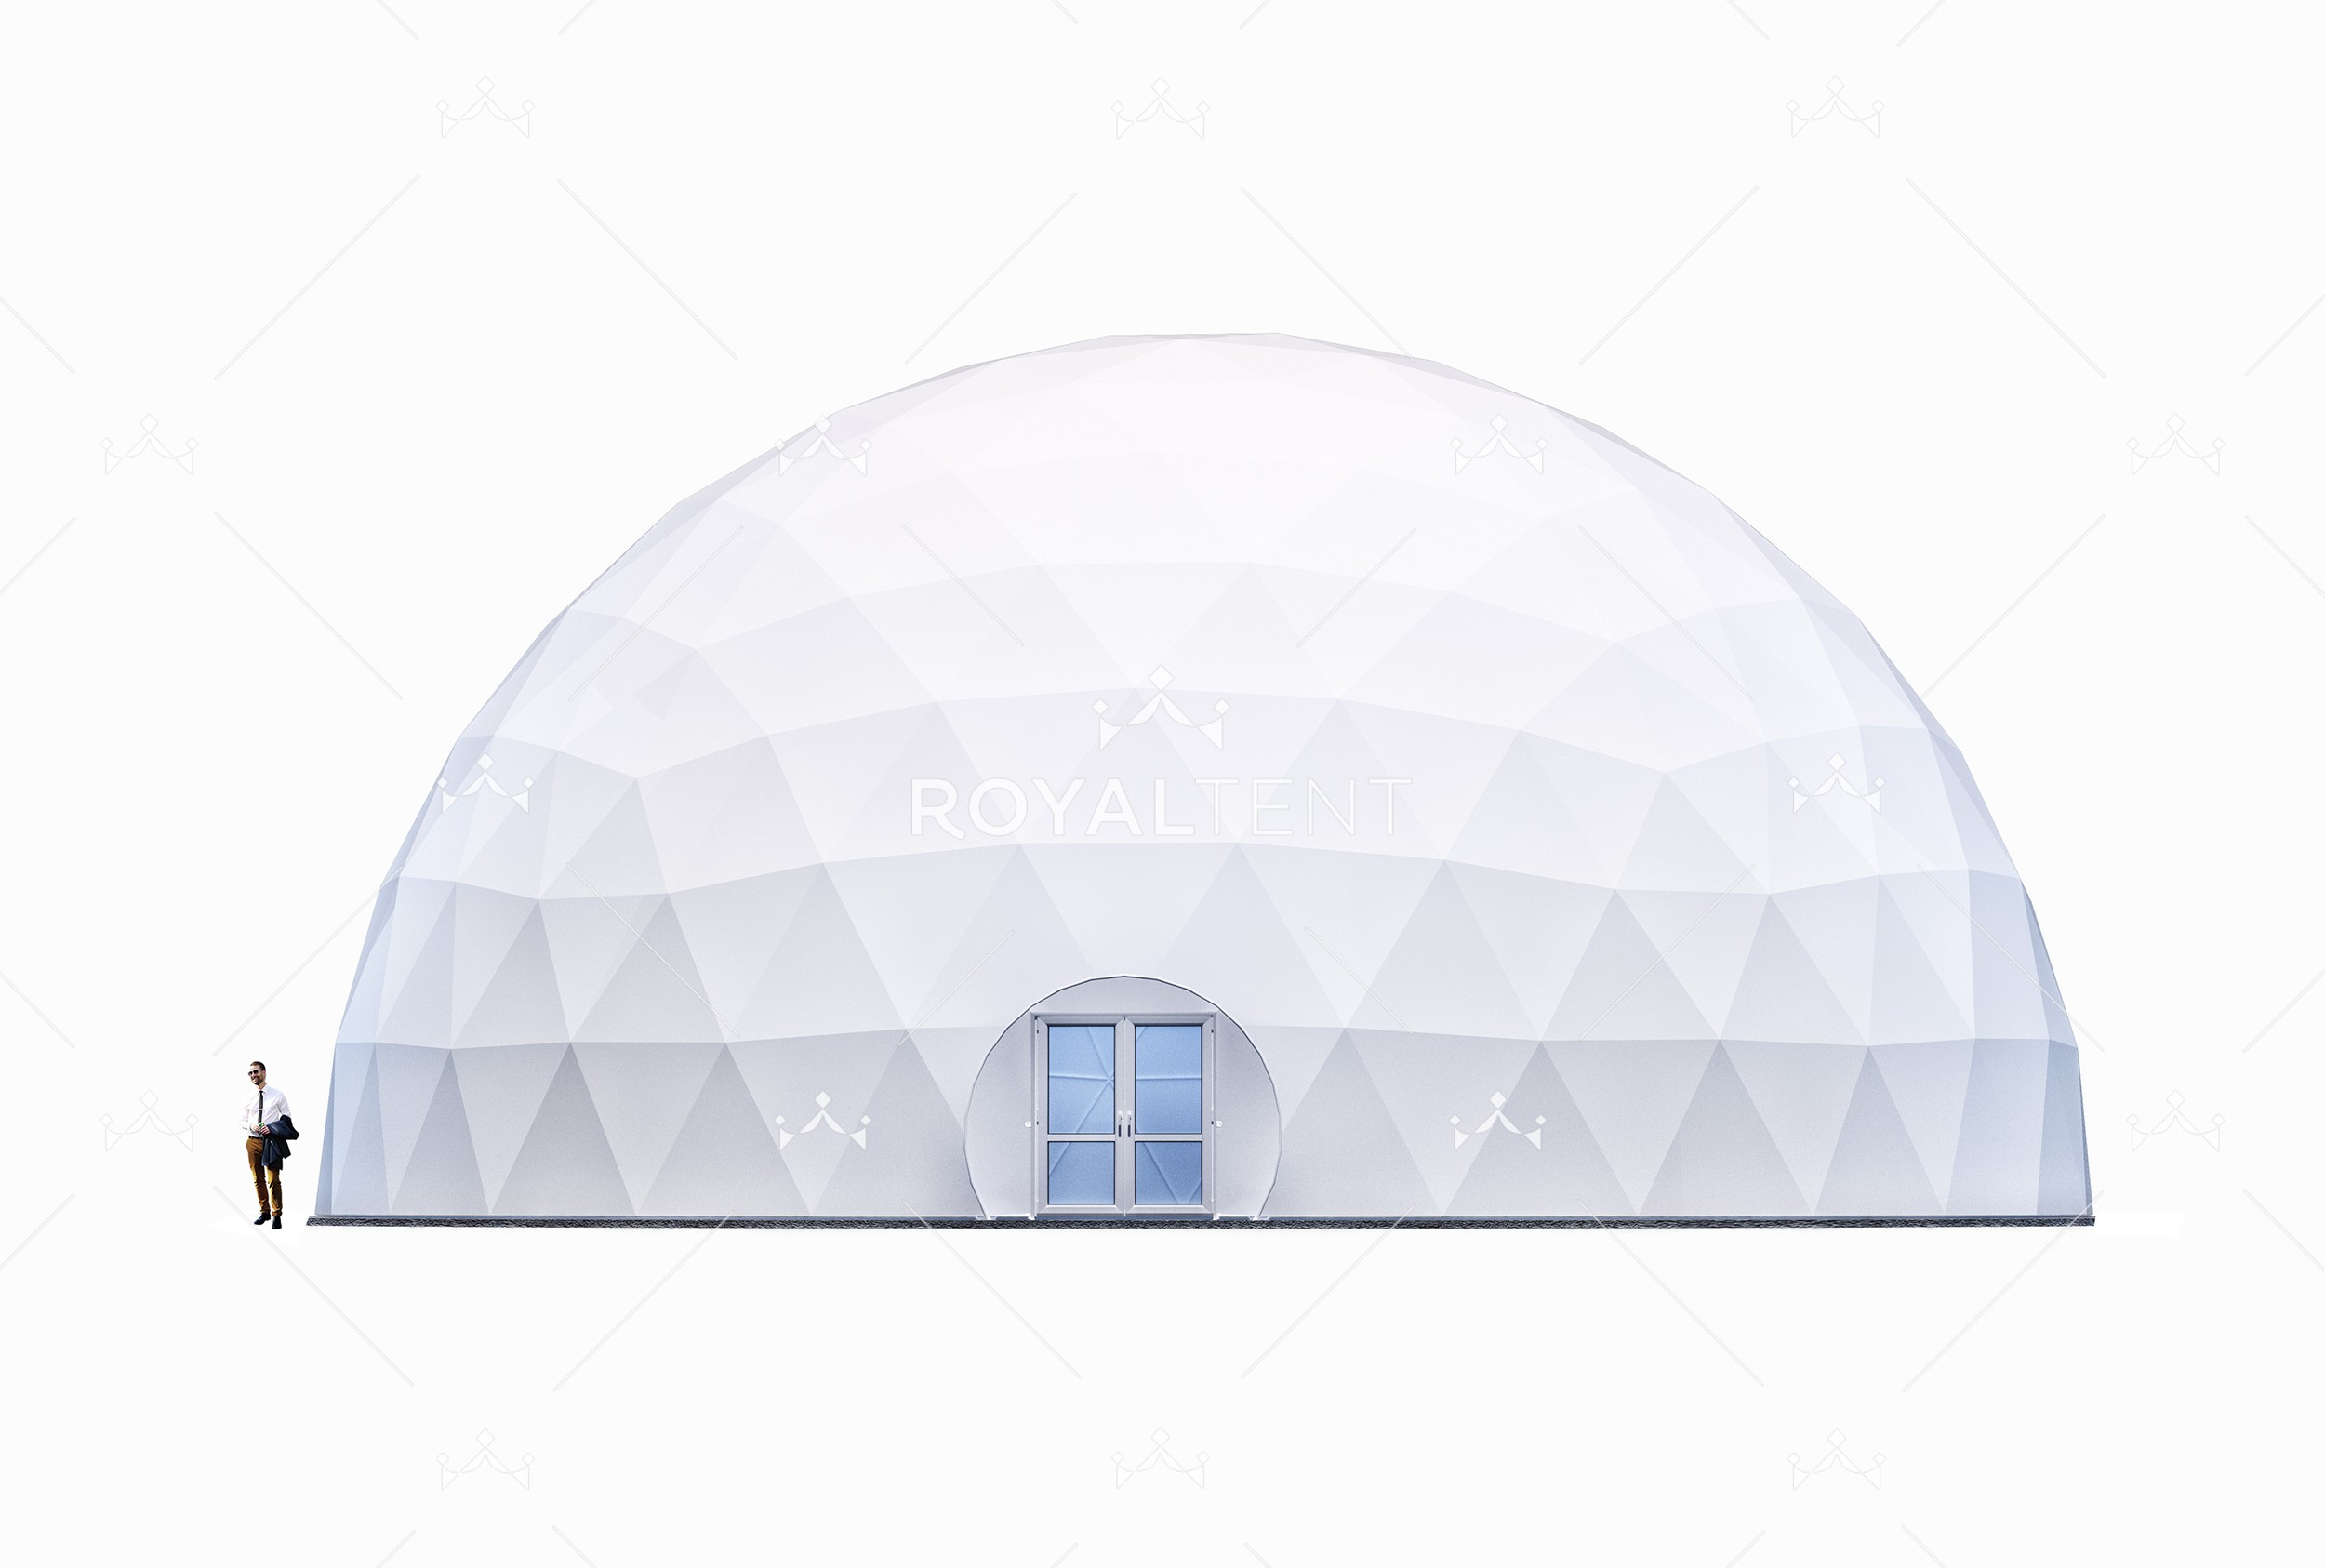 https://royaltent.me/houses_images/tent10_3_200111152810.jpg